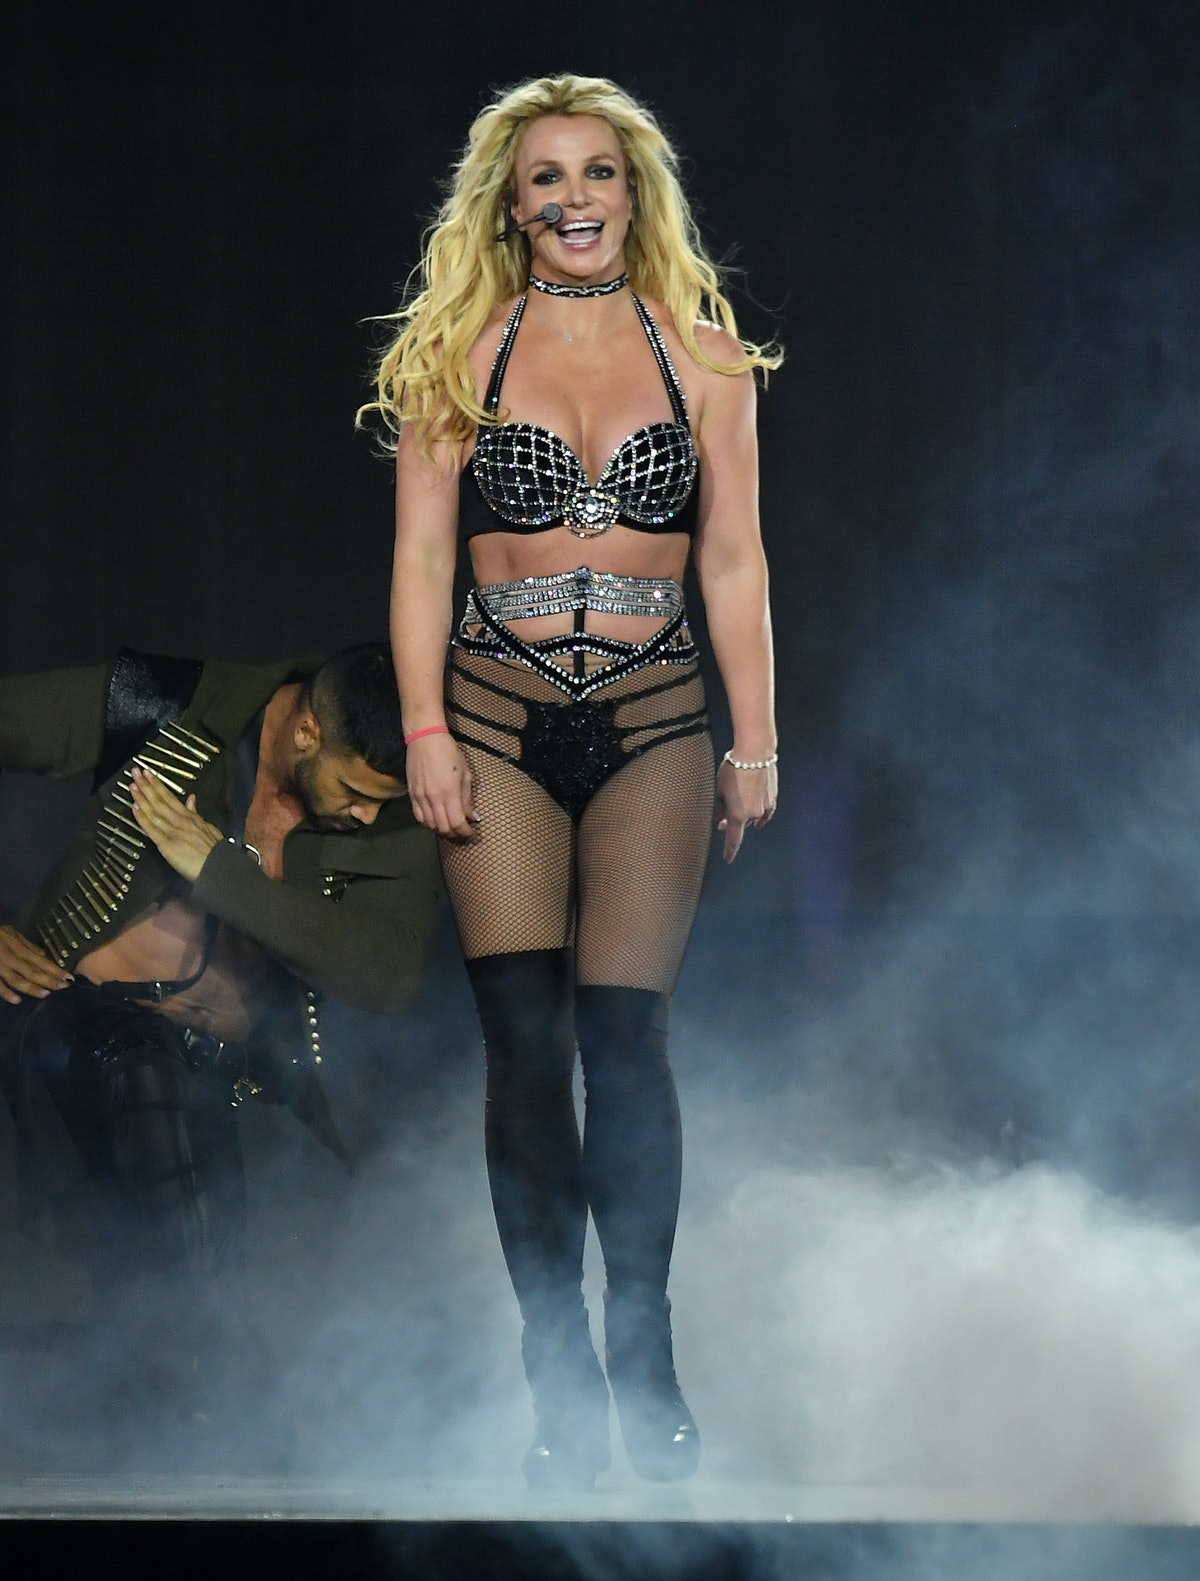 Britney Spears, shown here in a black bedazzled costume while performing in 2018 on tour, might retire from music.